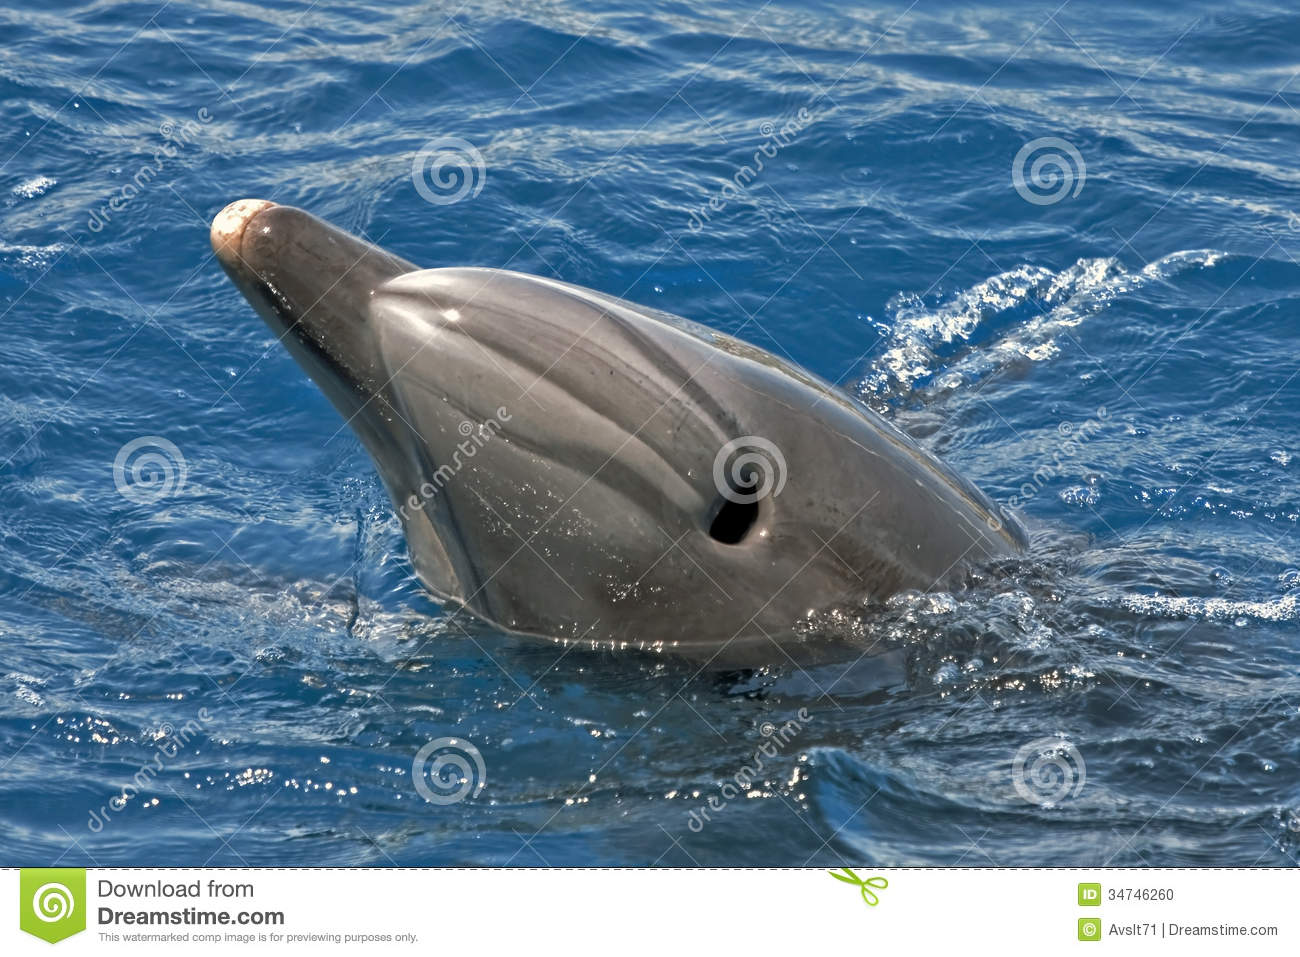 Blowhole of the dolphin stock photo. Image of anatomy - 34746260